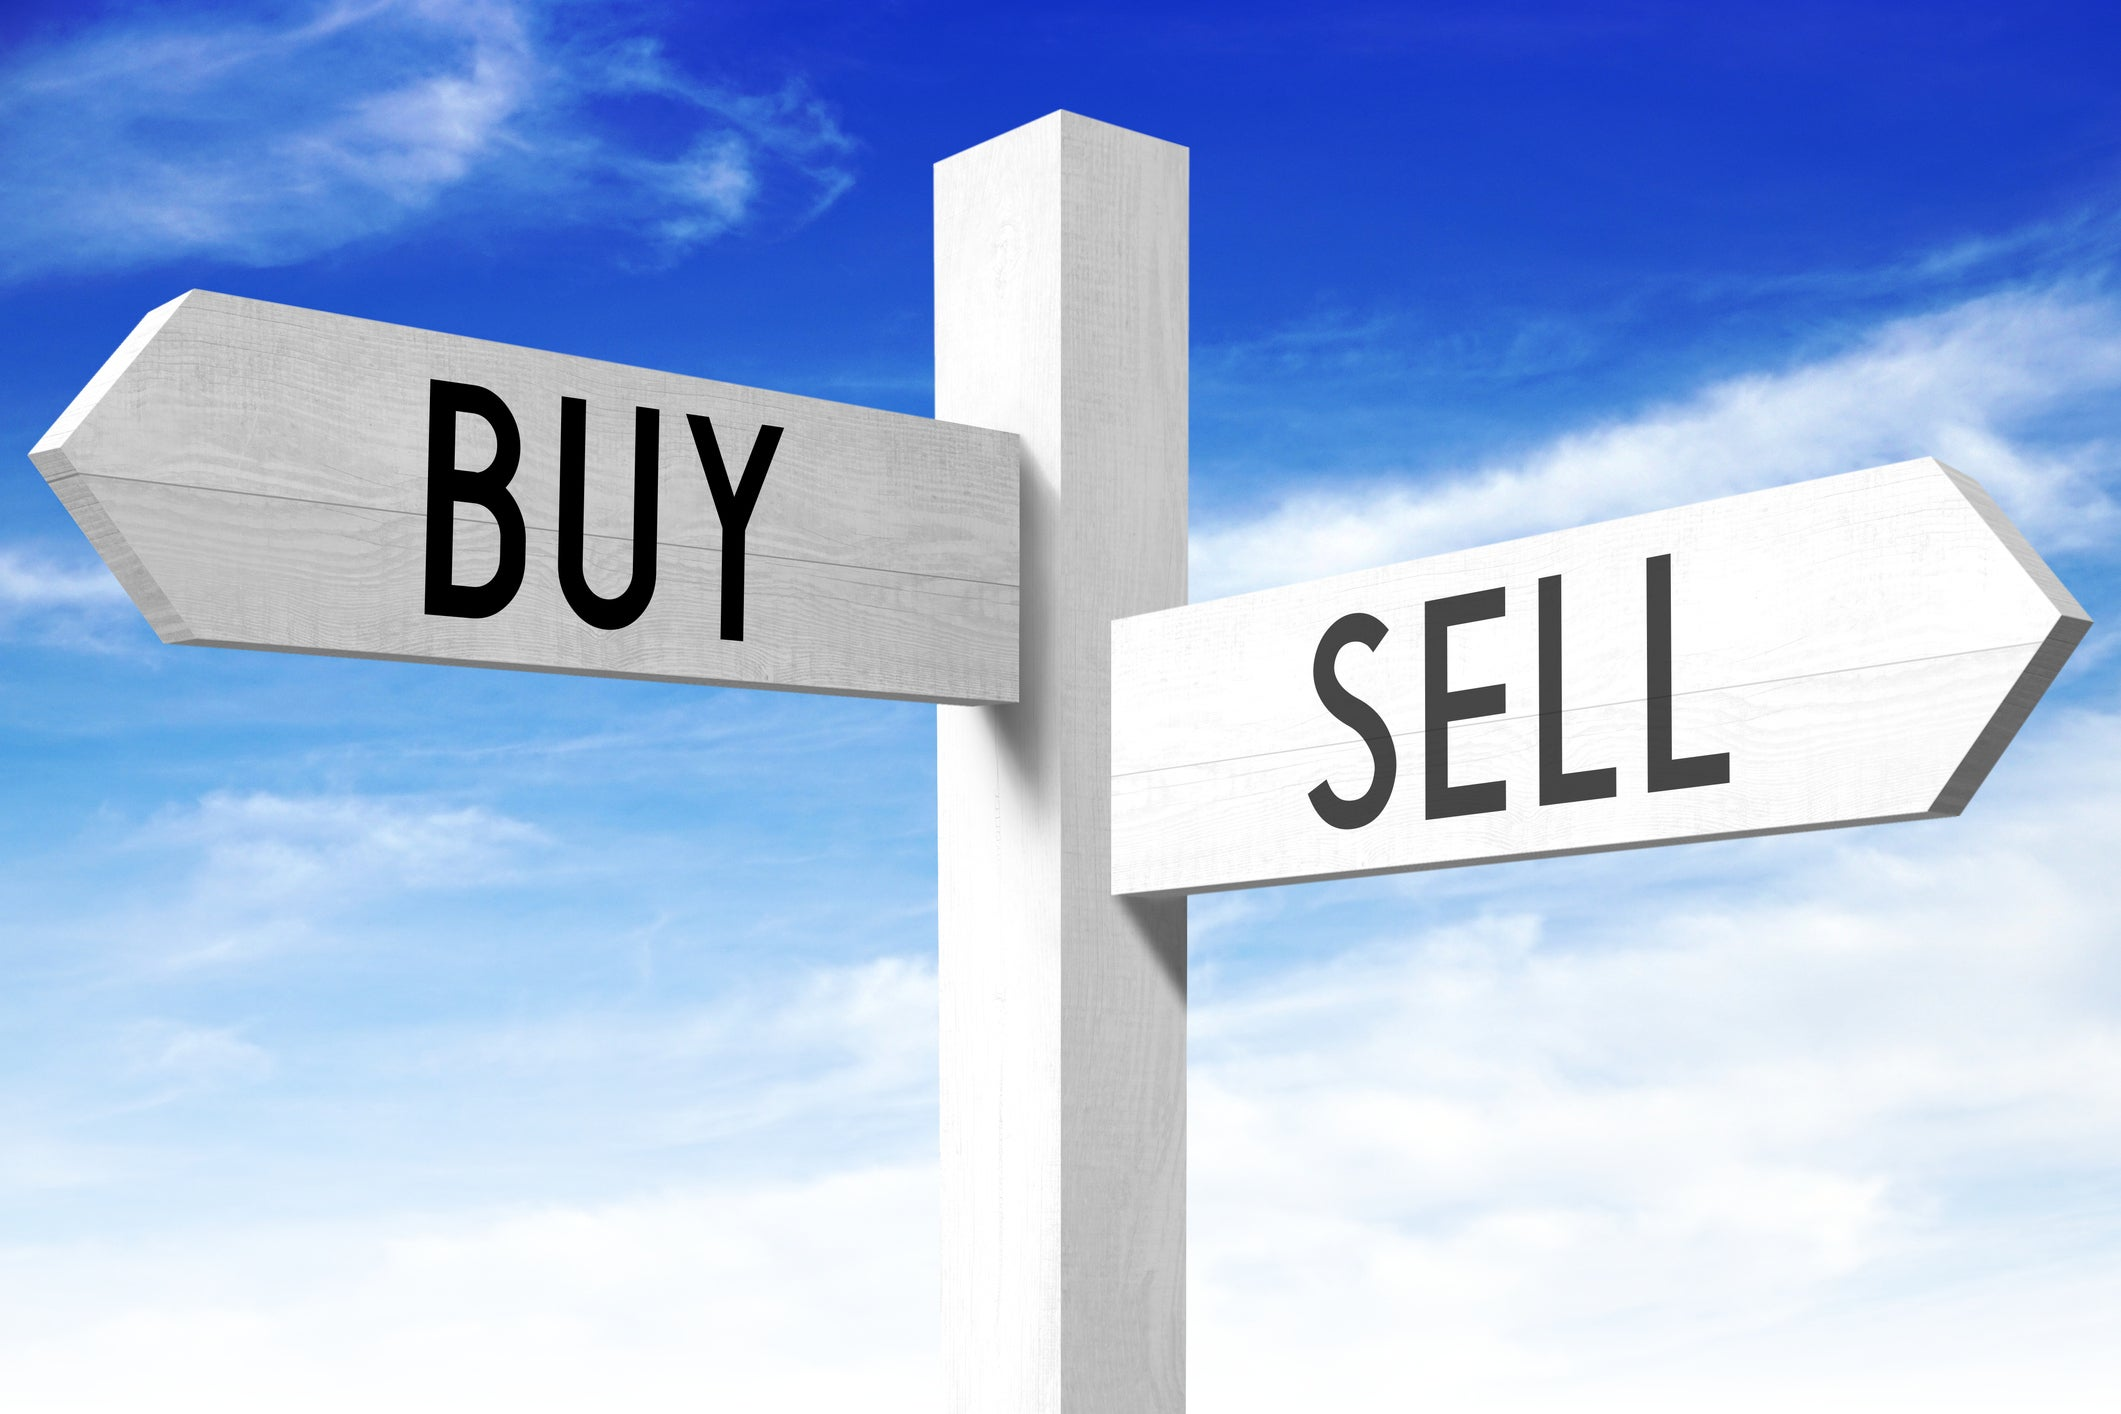 best stock market buy sell signal software